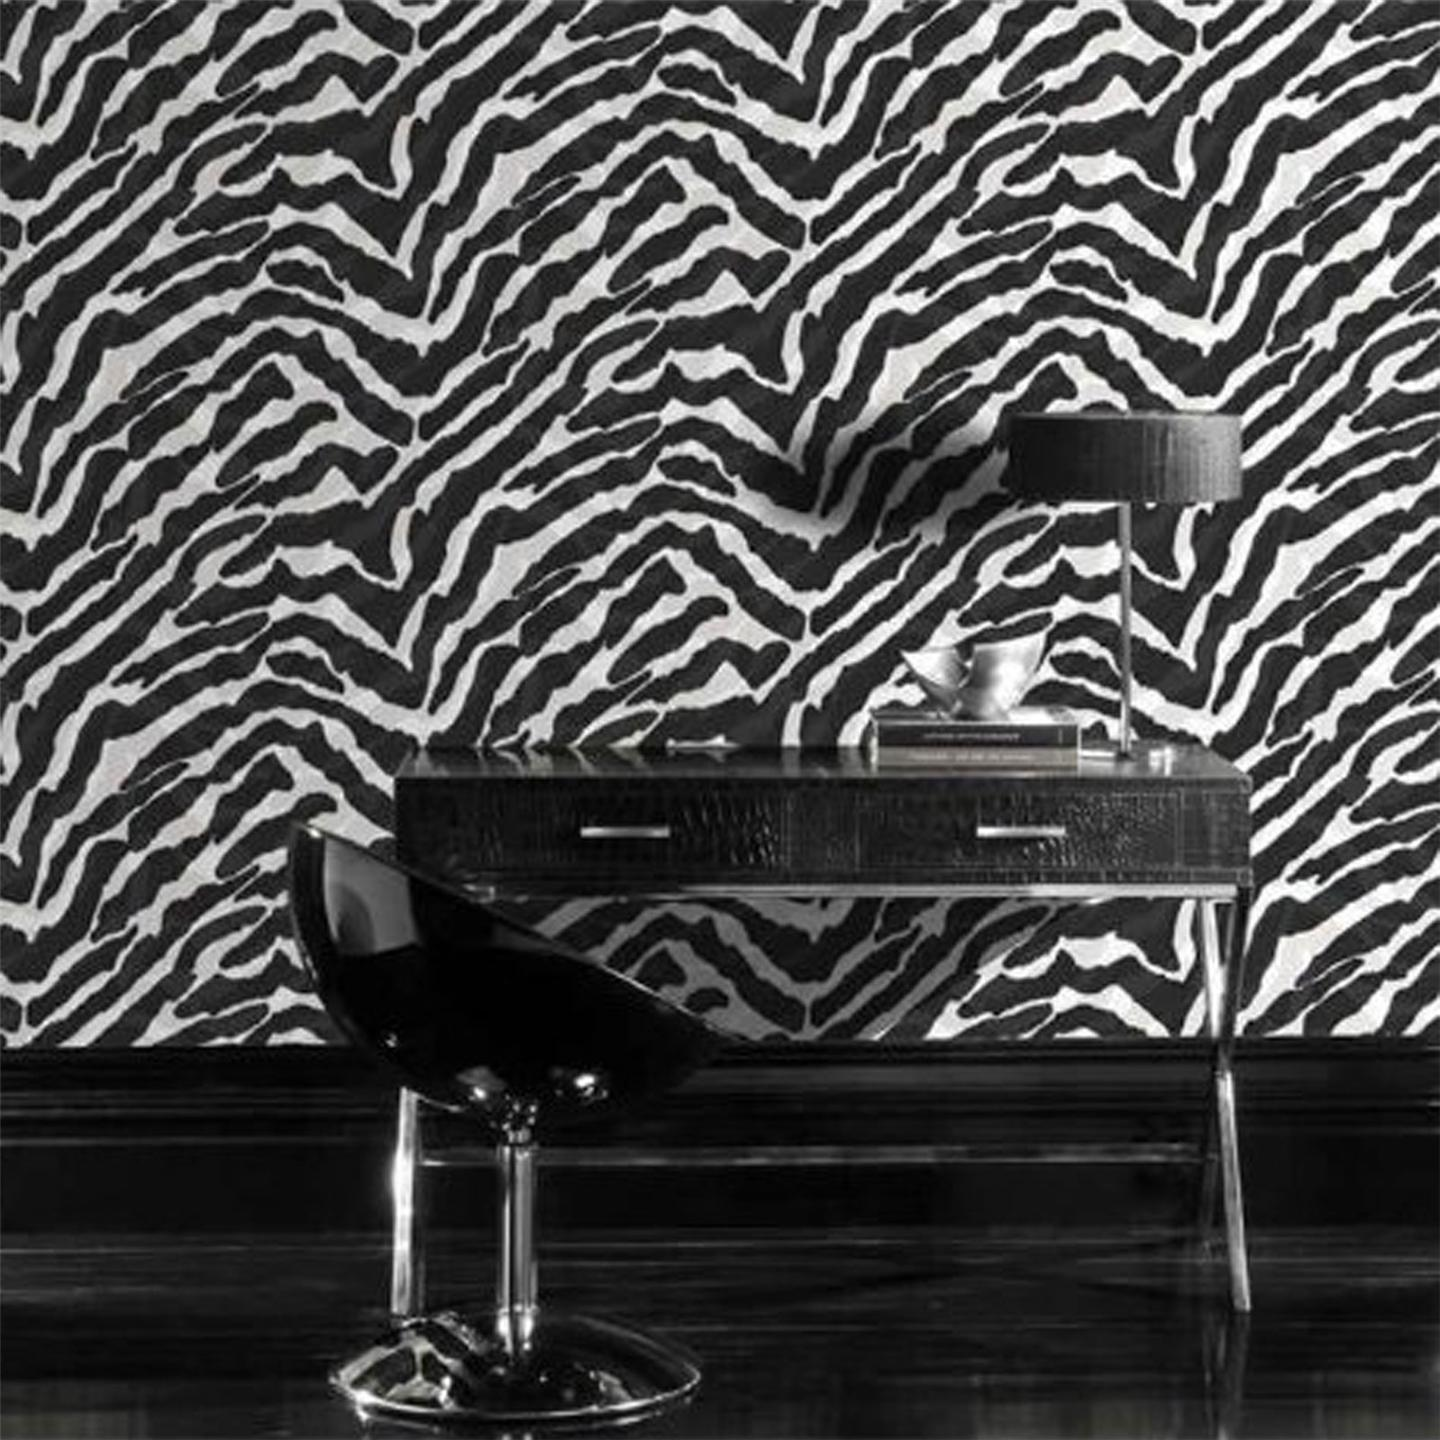 Black white zebra print wallpaper 10m new animal feature for Black and white mural prints